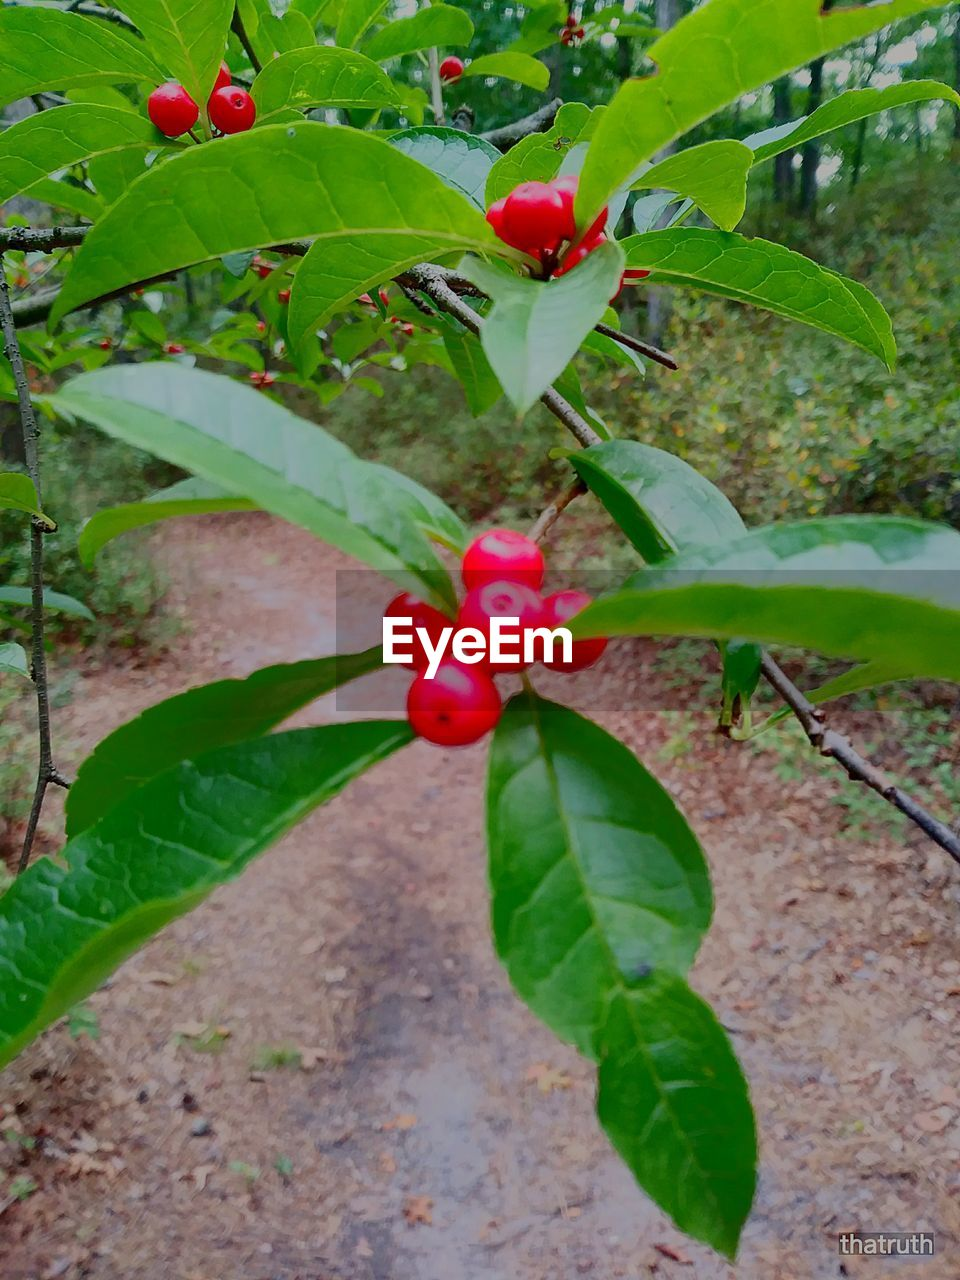 leaf, growth, green color, plant, red, fruit, growing, nature, freshness, food and drink, day, outdoors, no people, close-up, beauty in nature, branch, food, tree, healthy eating, periwinkle